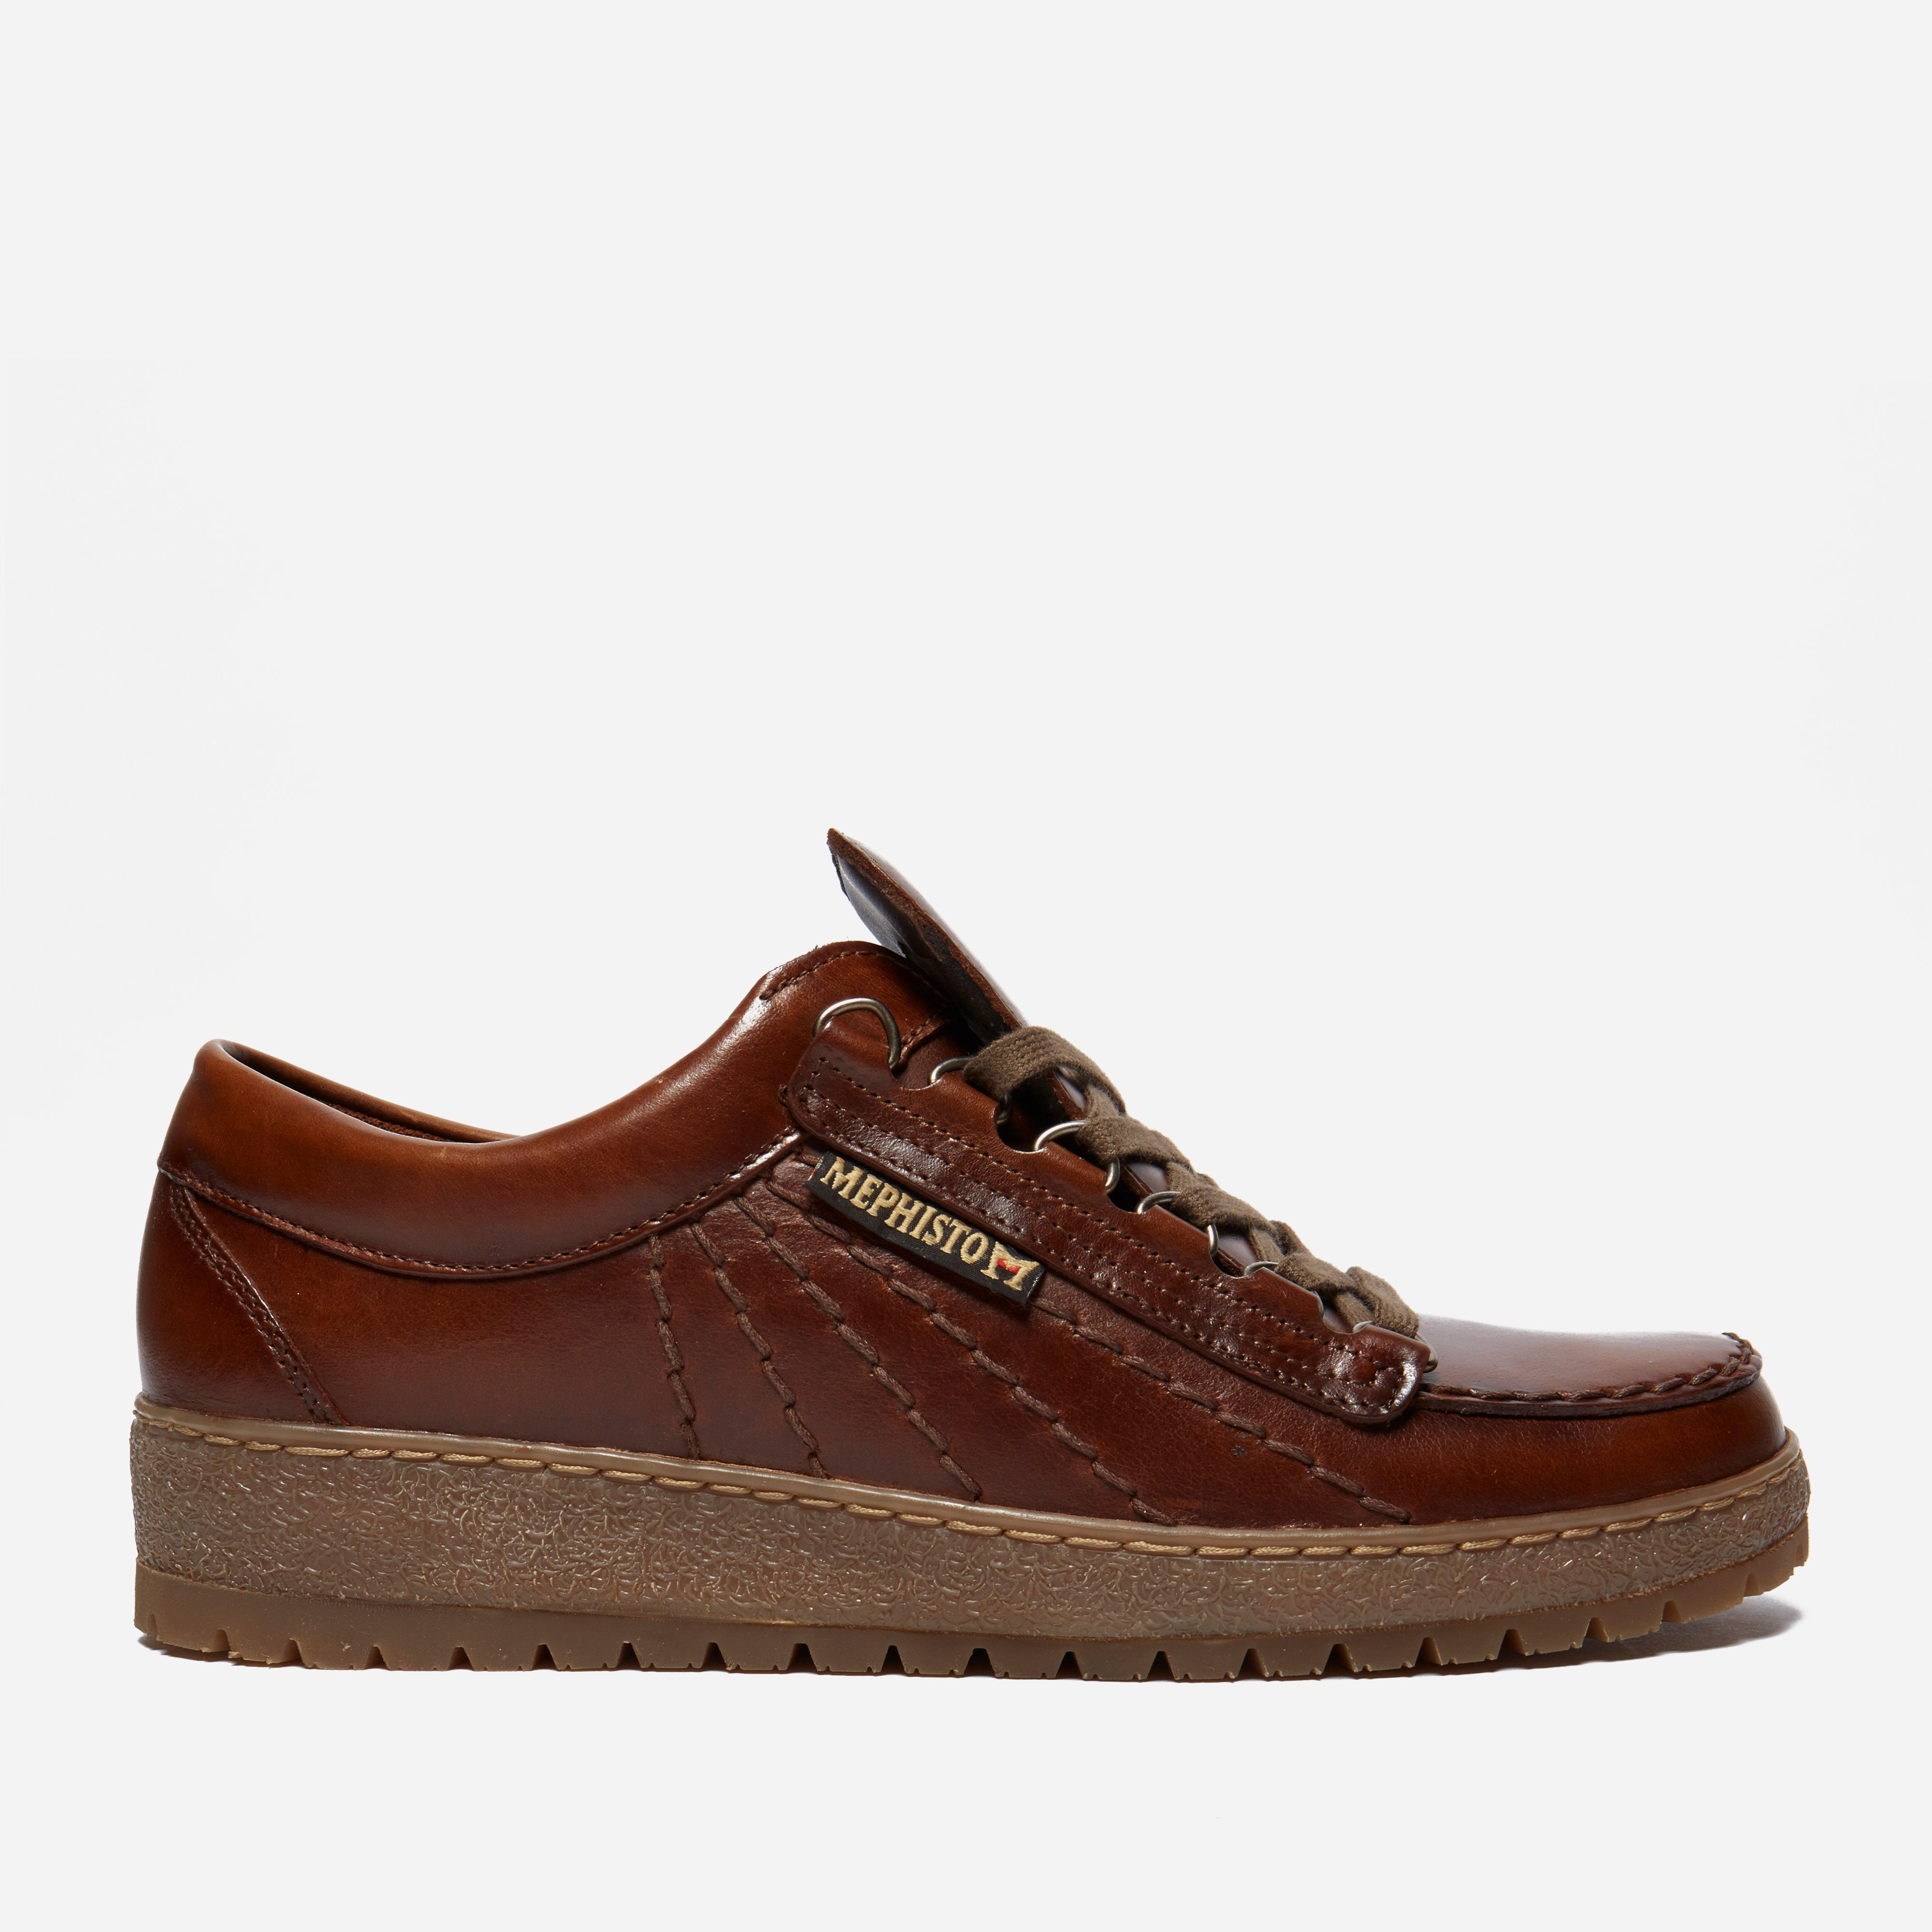 Mephisto Leather Rainbow Heritage 4778 in Brown for Men